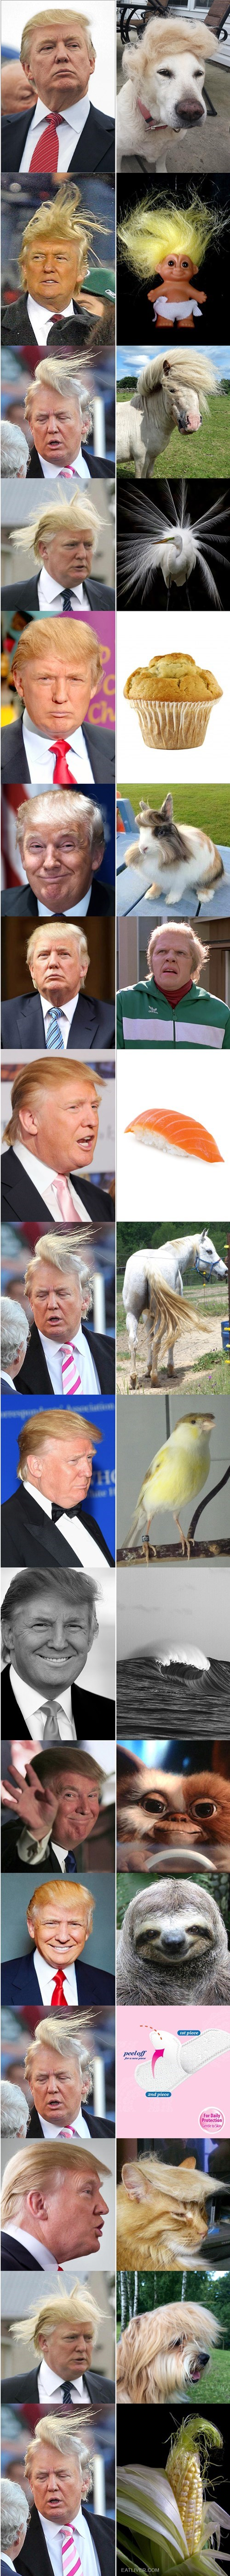 parecidos razonables nivel Trump